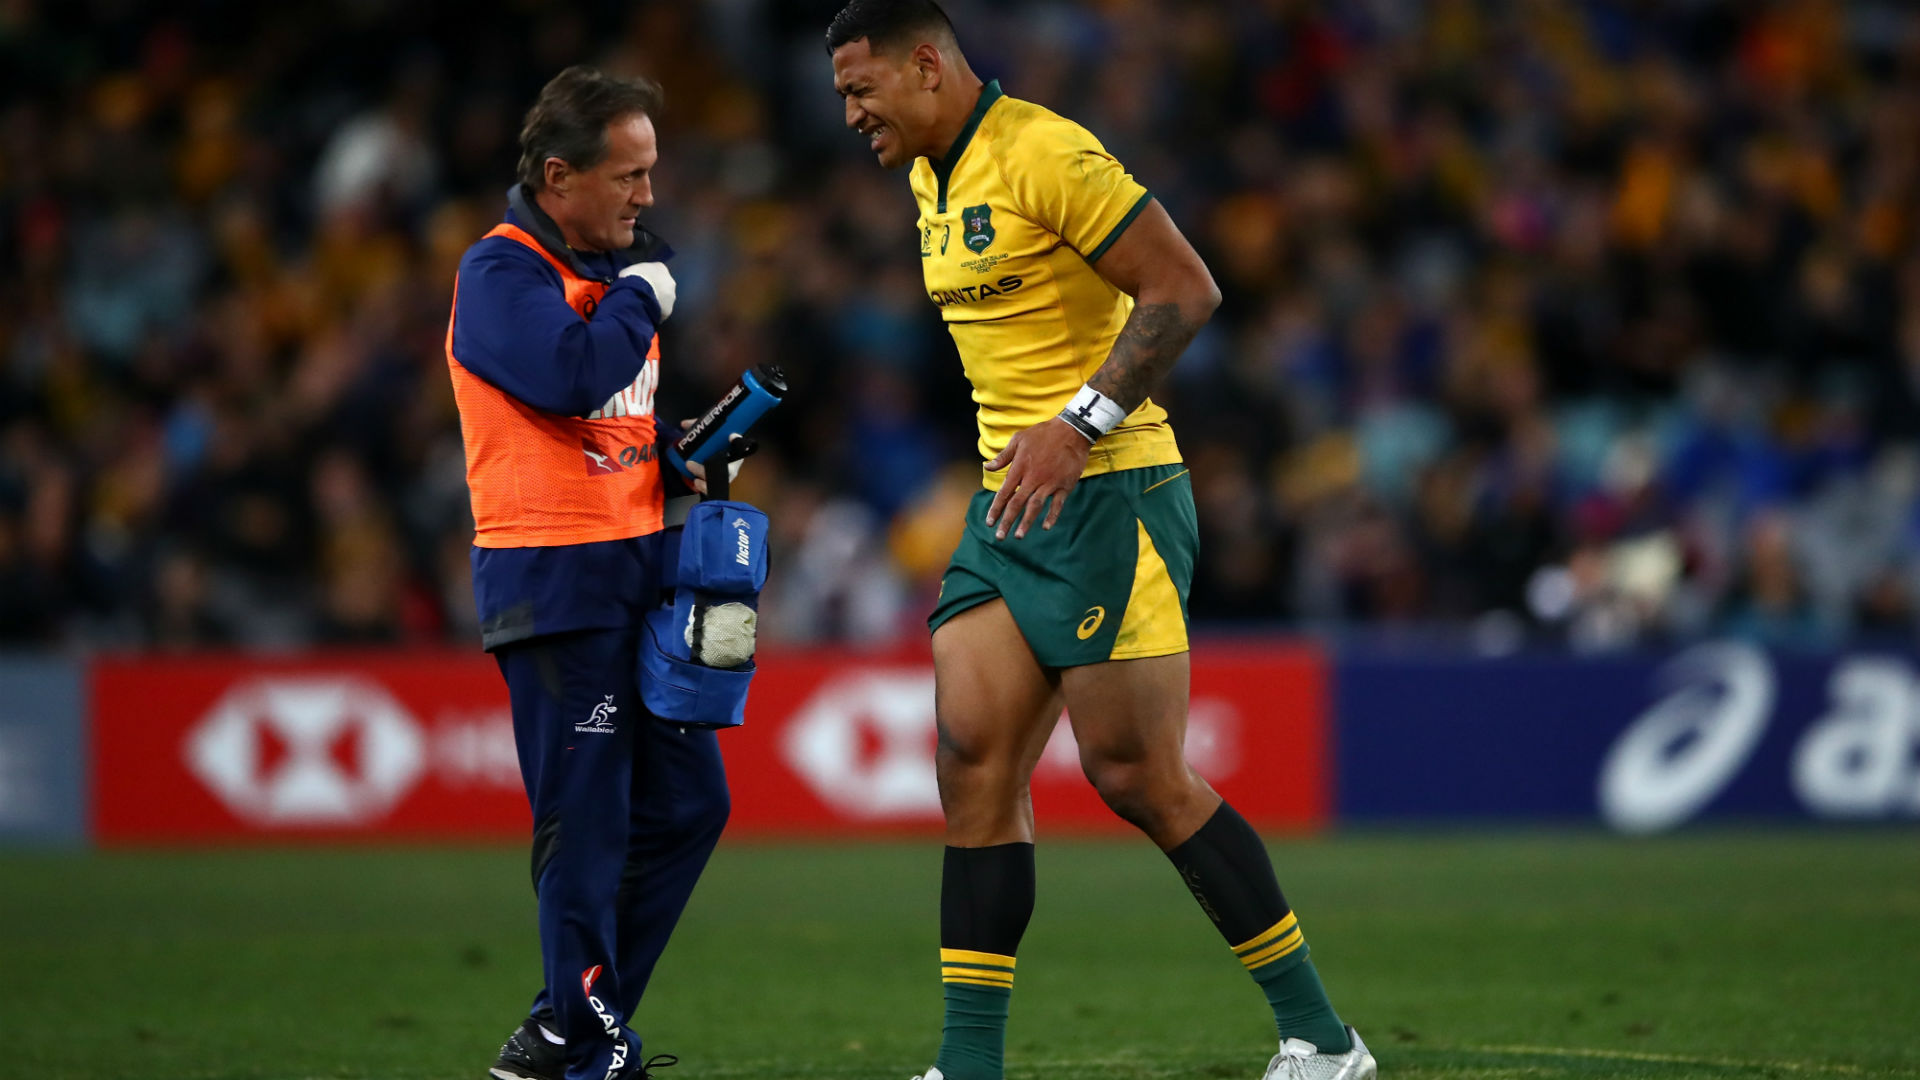 Wallabies star Folau ruled out of second Bledisloe Test